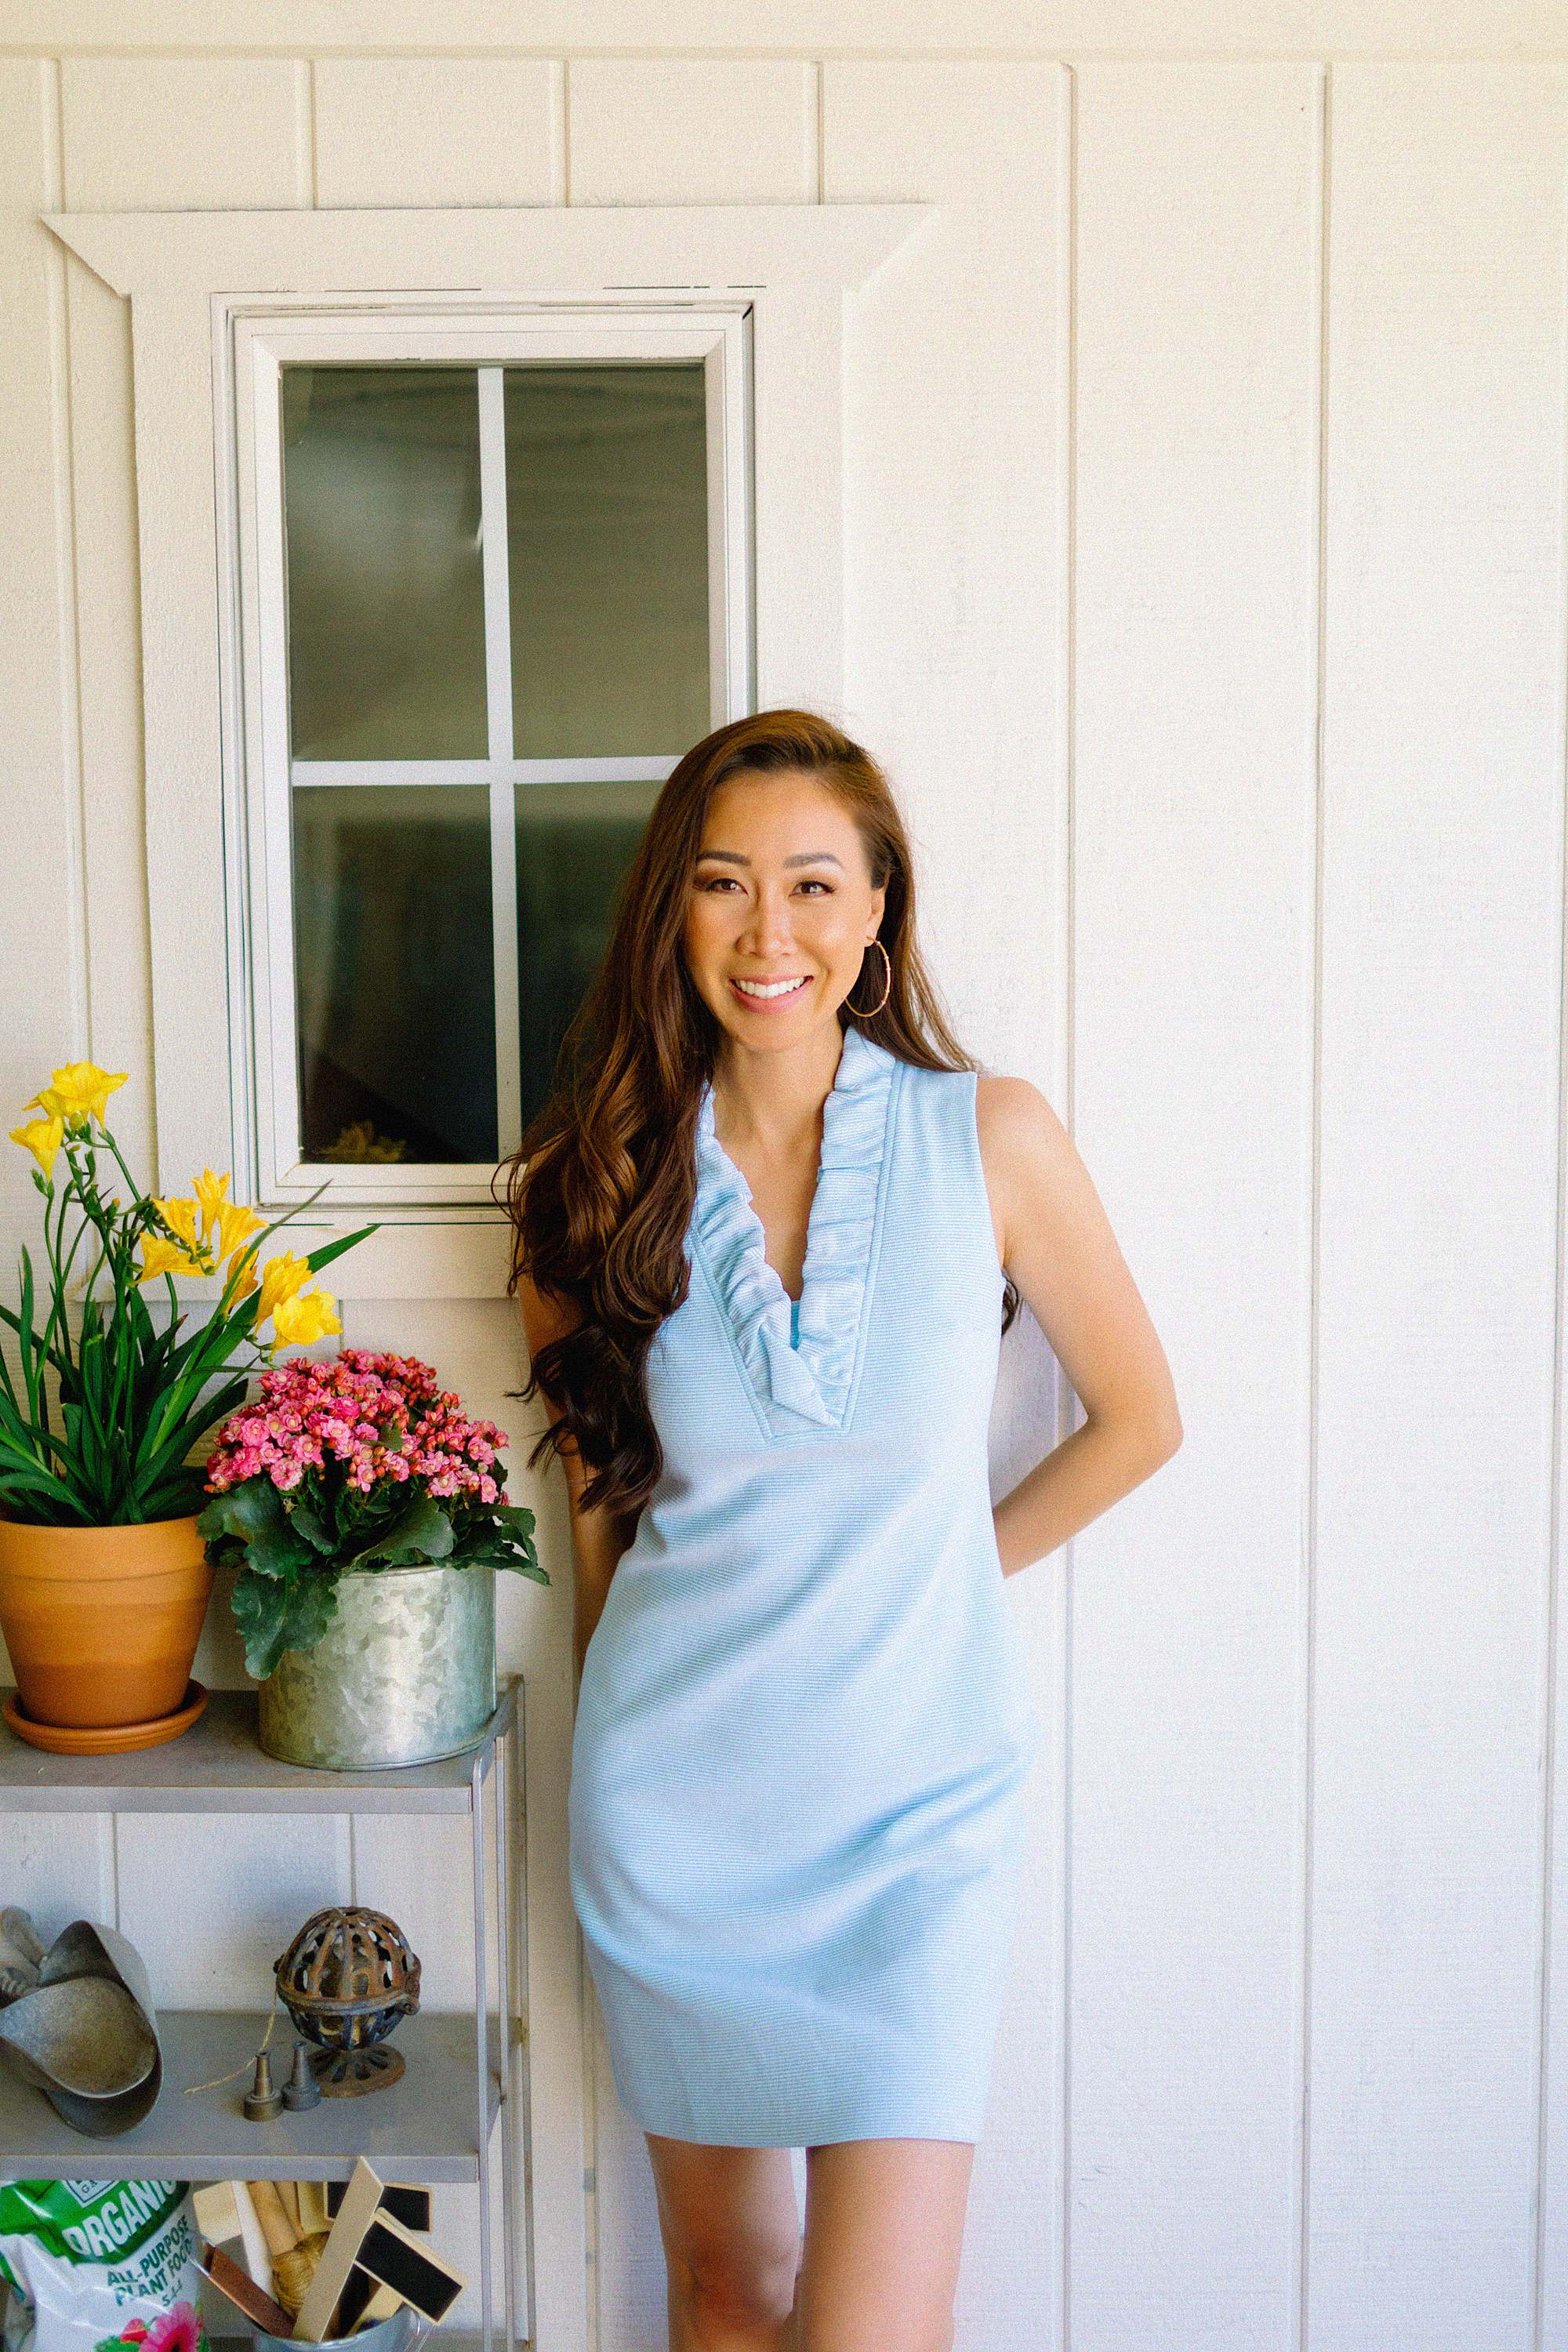 Lilly Pulitzer TISBURY SHIFT DRESS light blue ruffle neck dress details - spring dress looks, lifestyle blogger Diana Elizabeth leaning against the white wall with potted flowers #springdresses #lillypulitzer